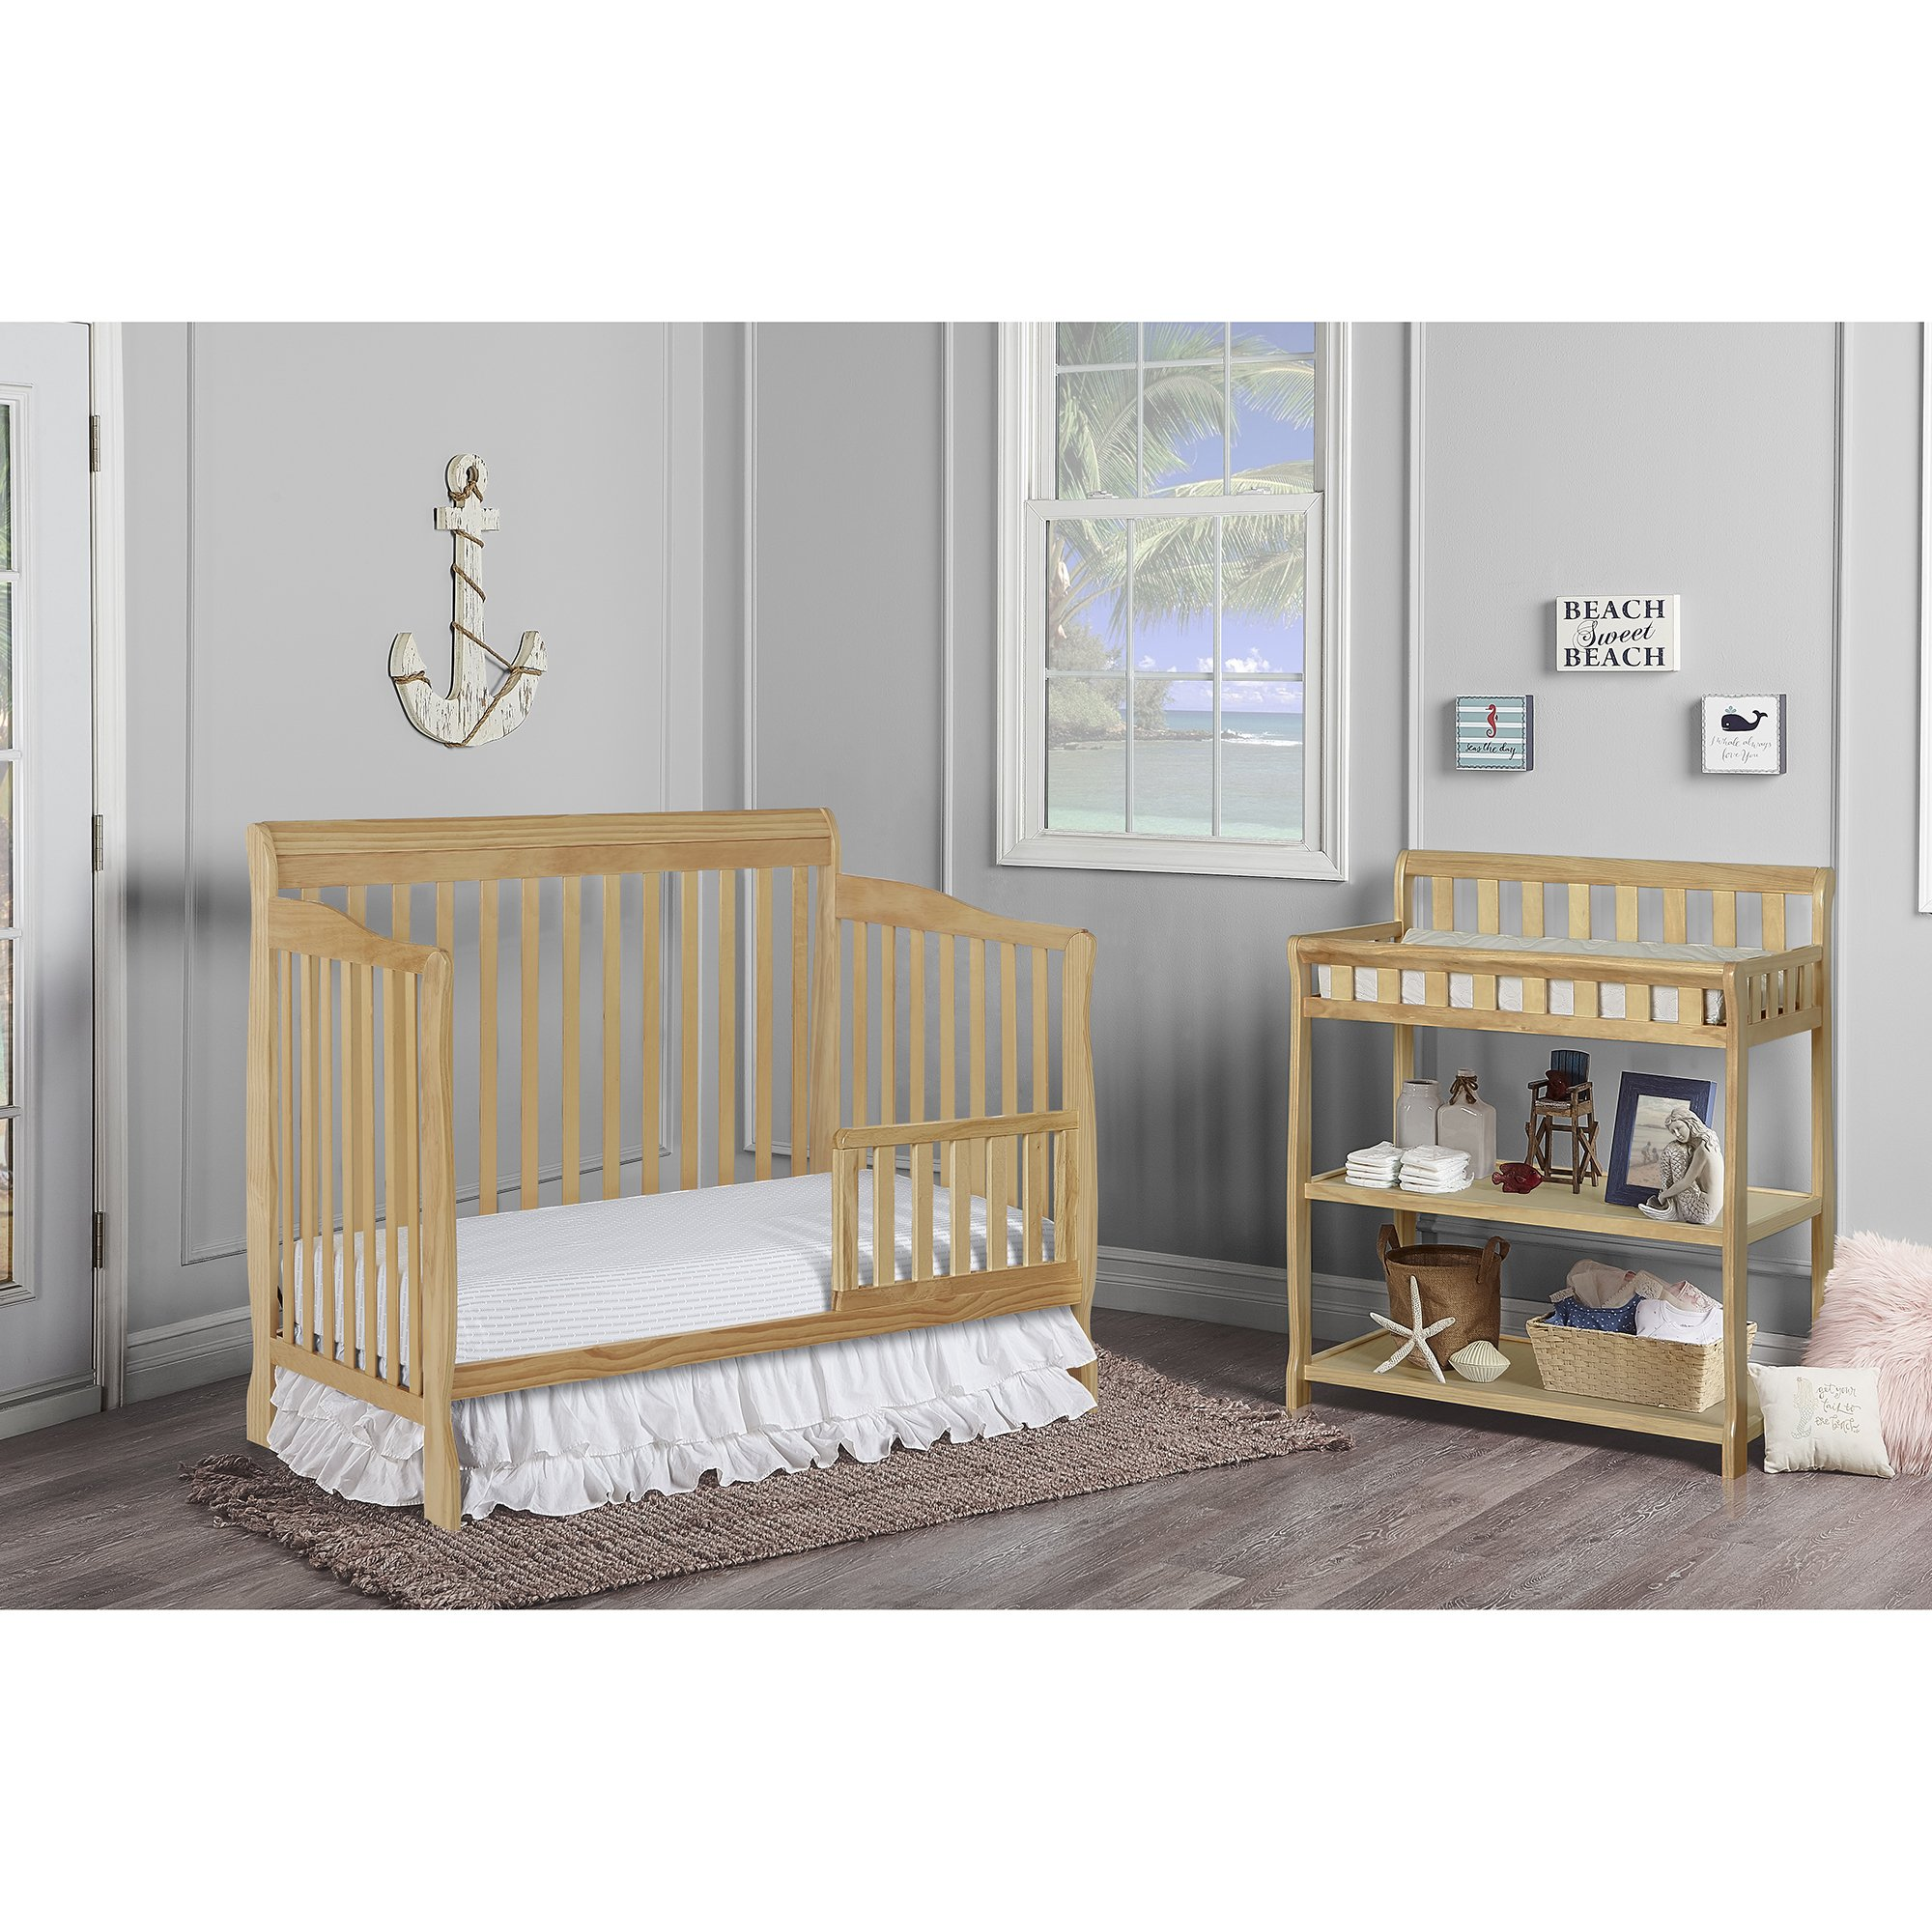 Dream On Me Ashton 5 in 1 Convertible Crib, Natural by Dream On Me (Image #4)